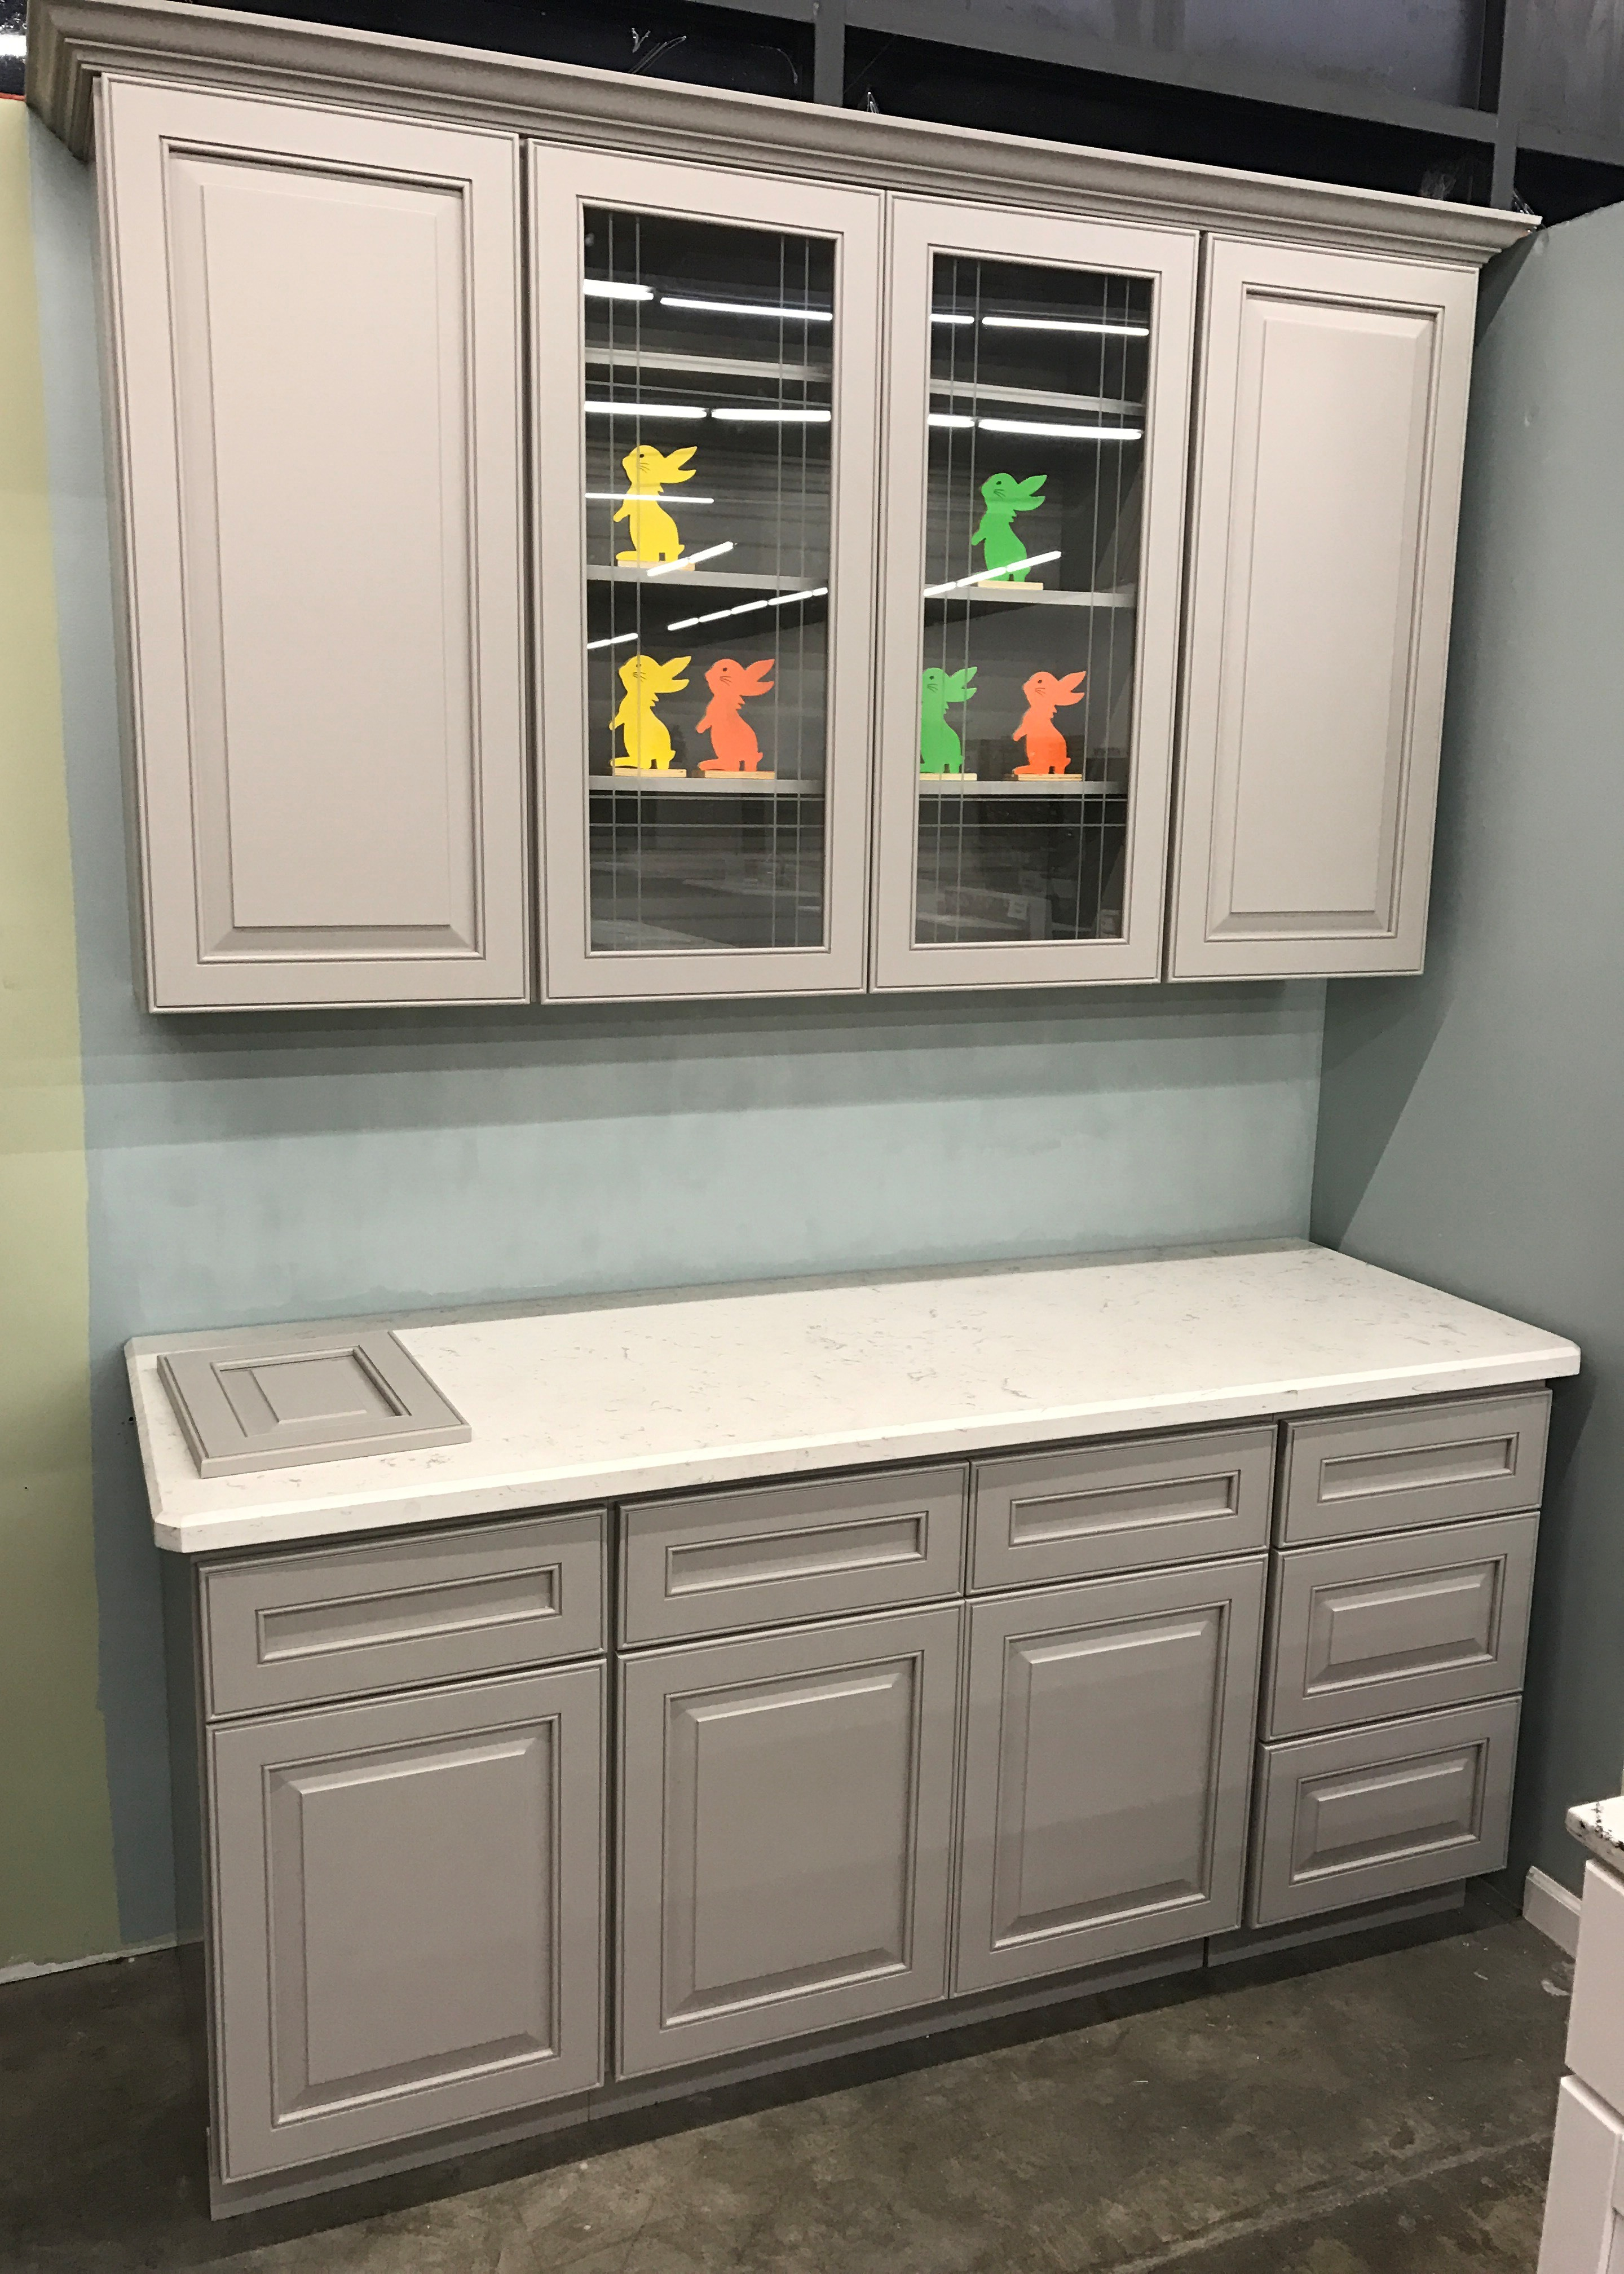 3W Light Grey Painted Maple Raised Panel Cabinets, dovetail drawers with soft close slides